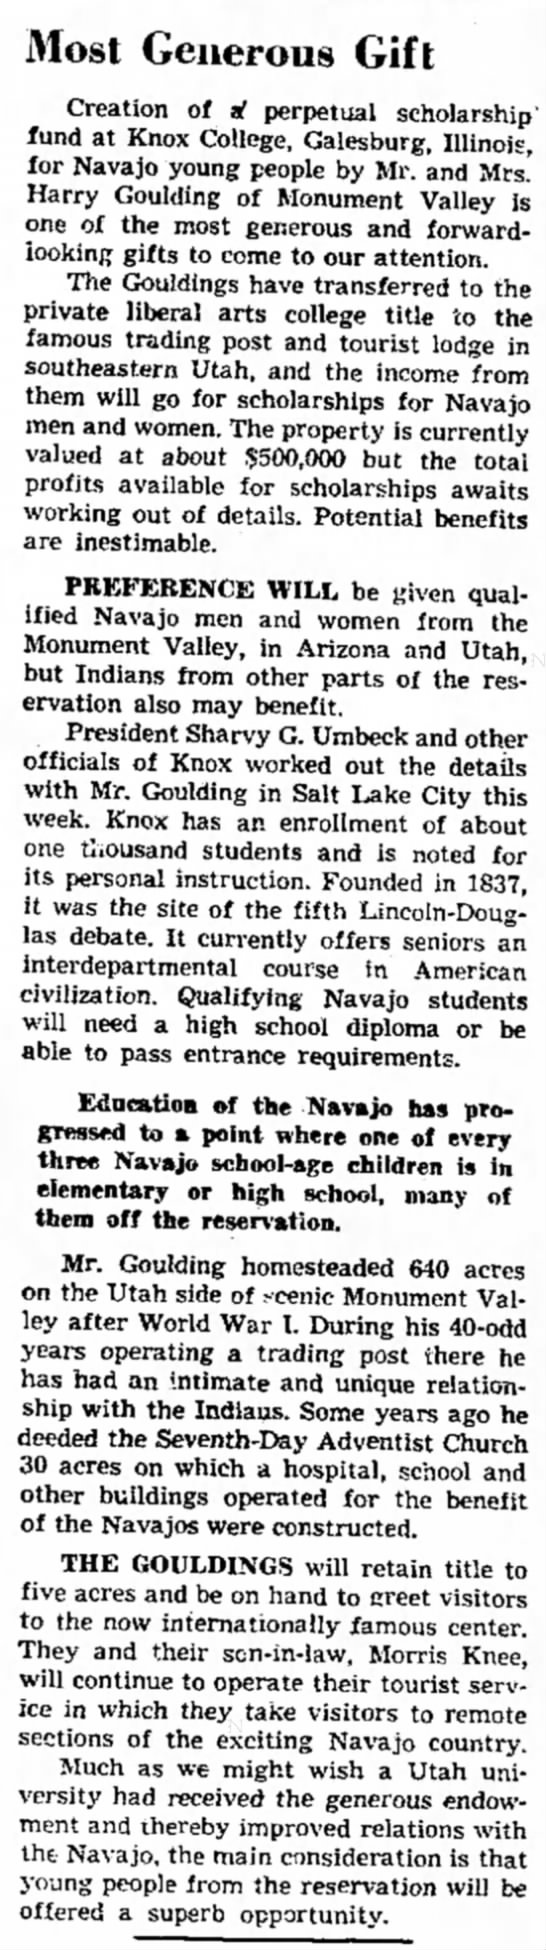 Salt Lake Tribune (SLC, UT) - August 8, 1963 - page 12 - Most Generous Gift Creation of al perpetual...